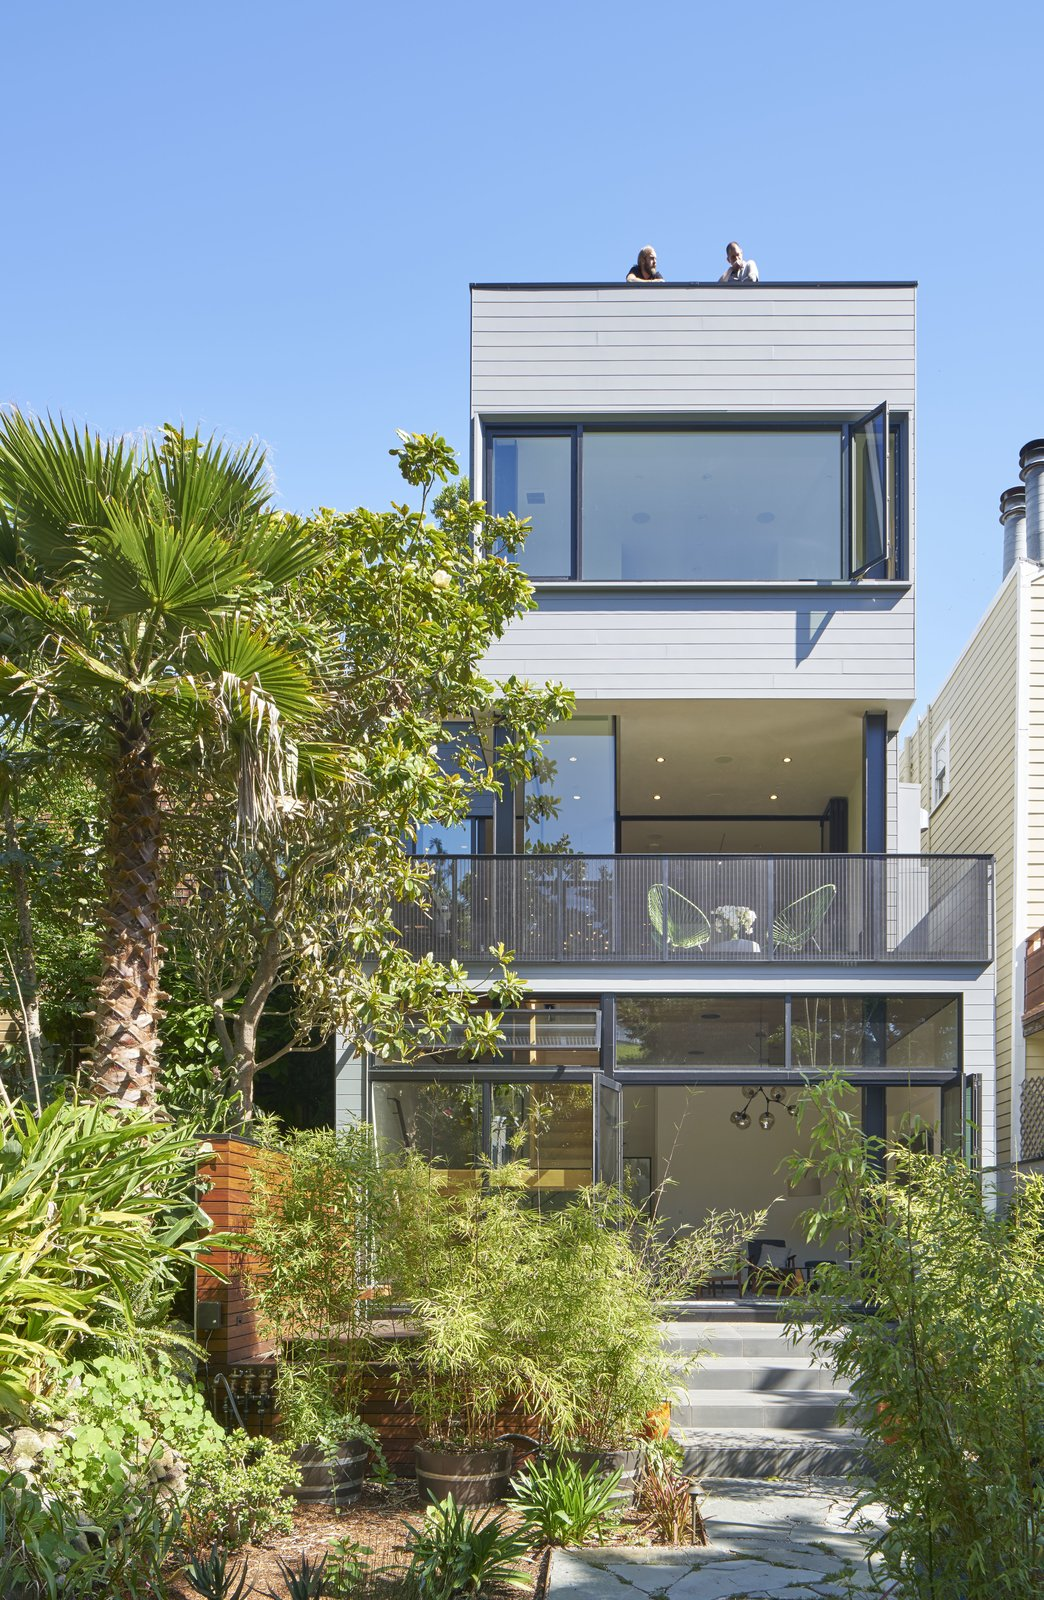 Outdoor, Hardscapes, Walkways, Gardens, Trees, Shrubs, Back Yard, Metal Fences, Wall, Garden, and Wire Fences, Wall 29th Street Residence in San Francisco, California  29th Street Residence by Schwartz and Architecture